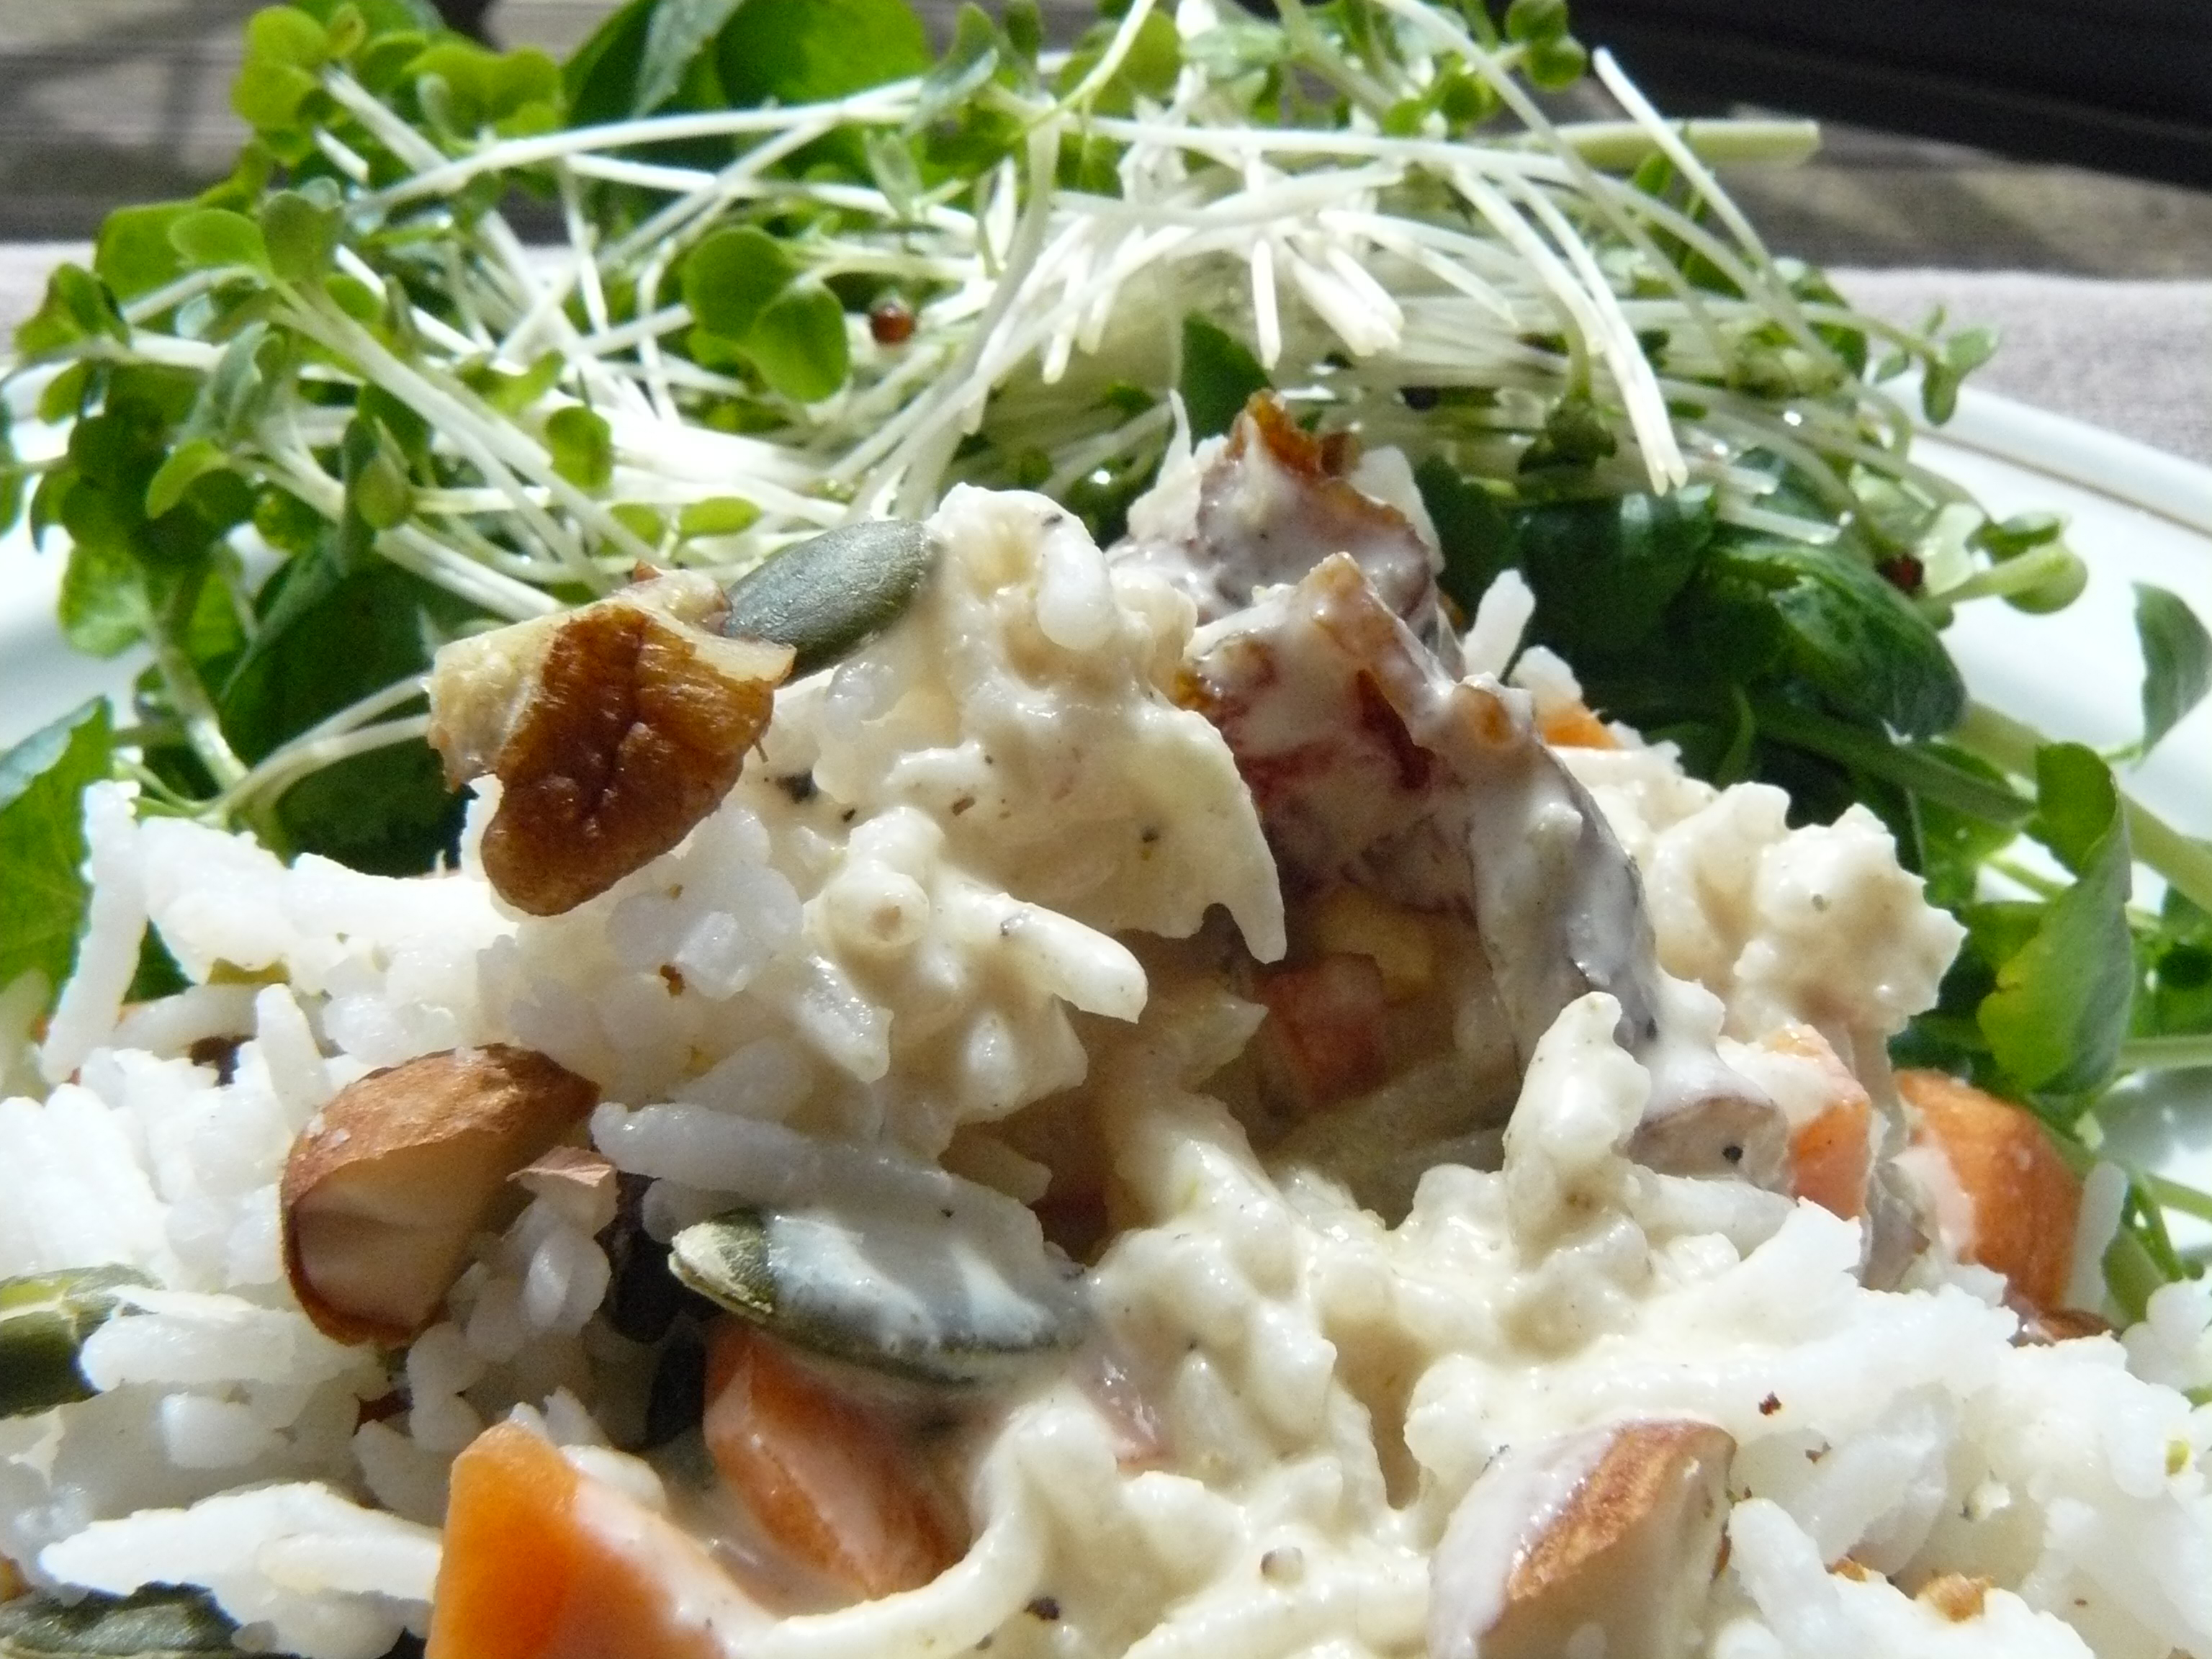 Rice, Nut and Seed Salad with Tahini Dressing